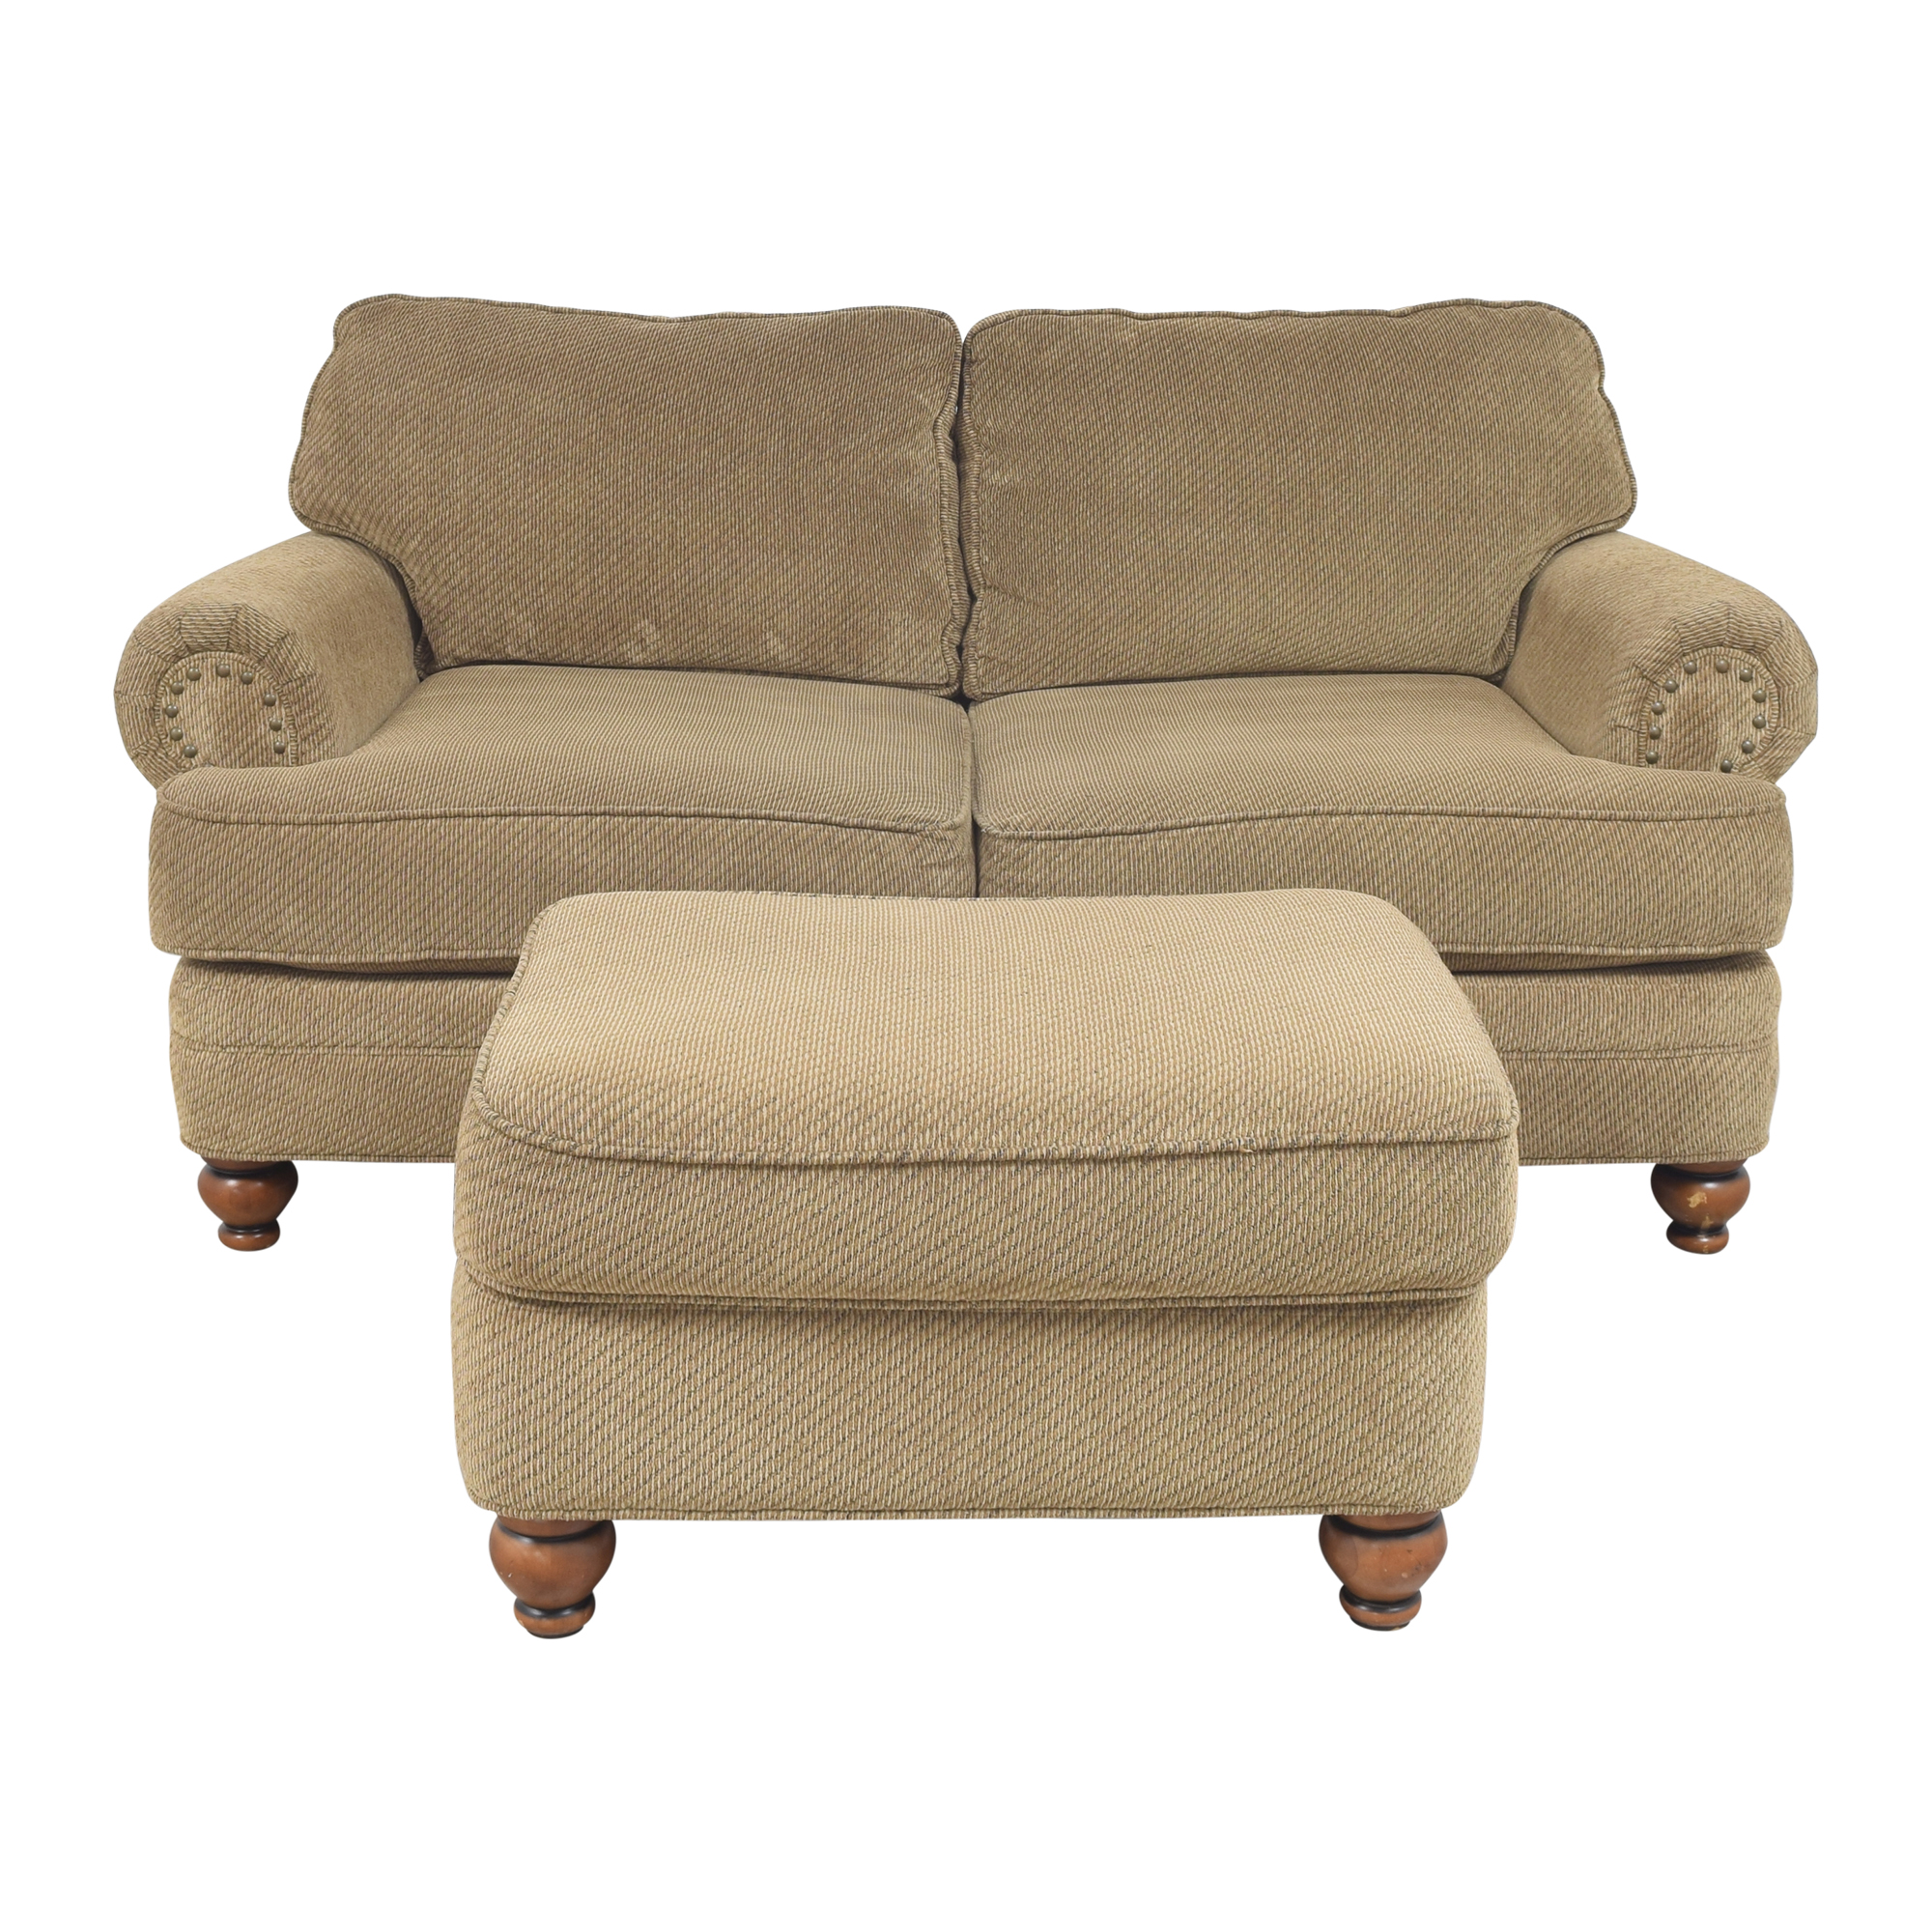 buy Raymour & Flanigan Dorian Loveseat with Ottoman Raymour & Flanigan